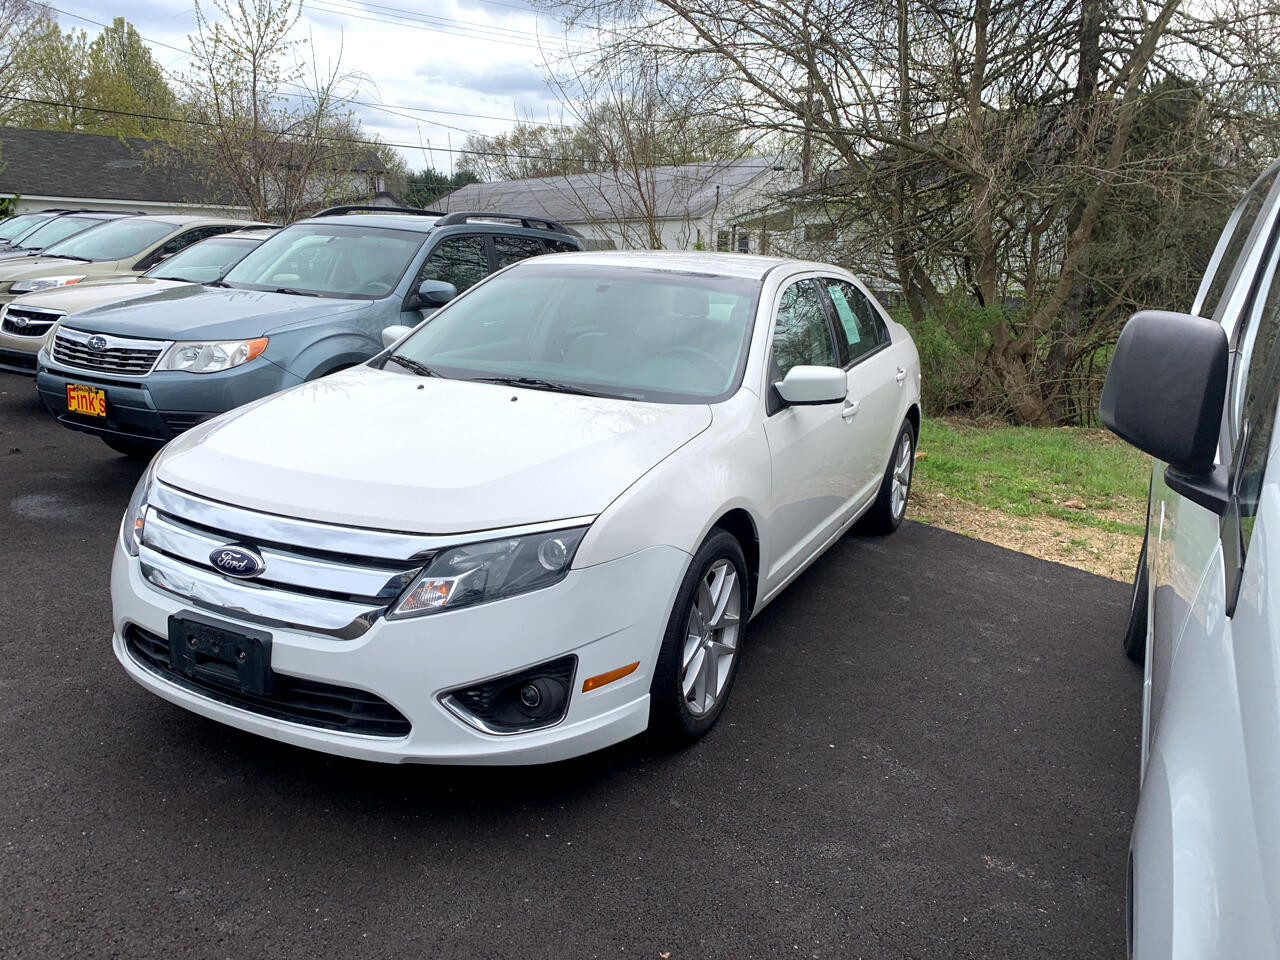 Ford Fusion 4dr Sdn SEL FWD 2012